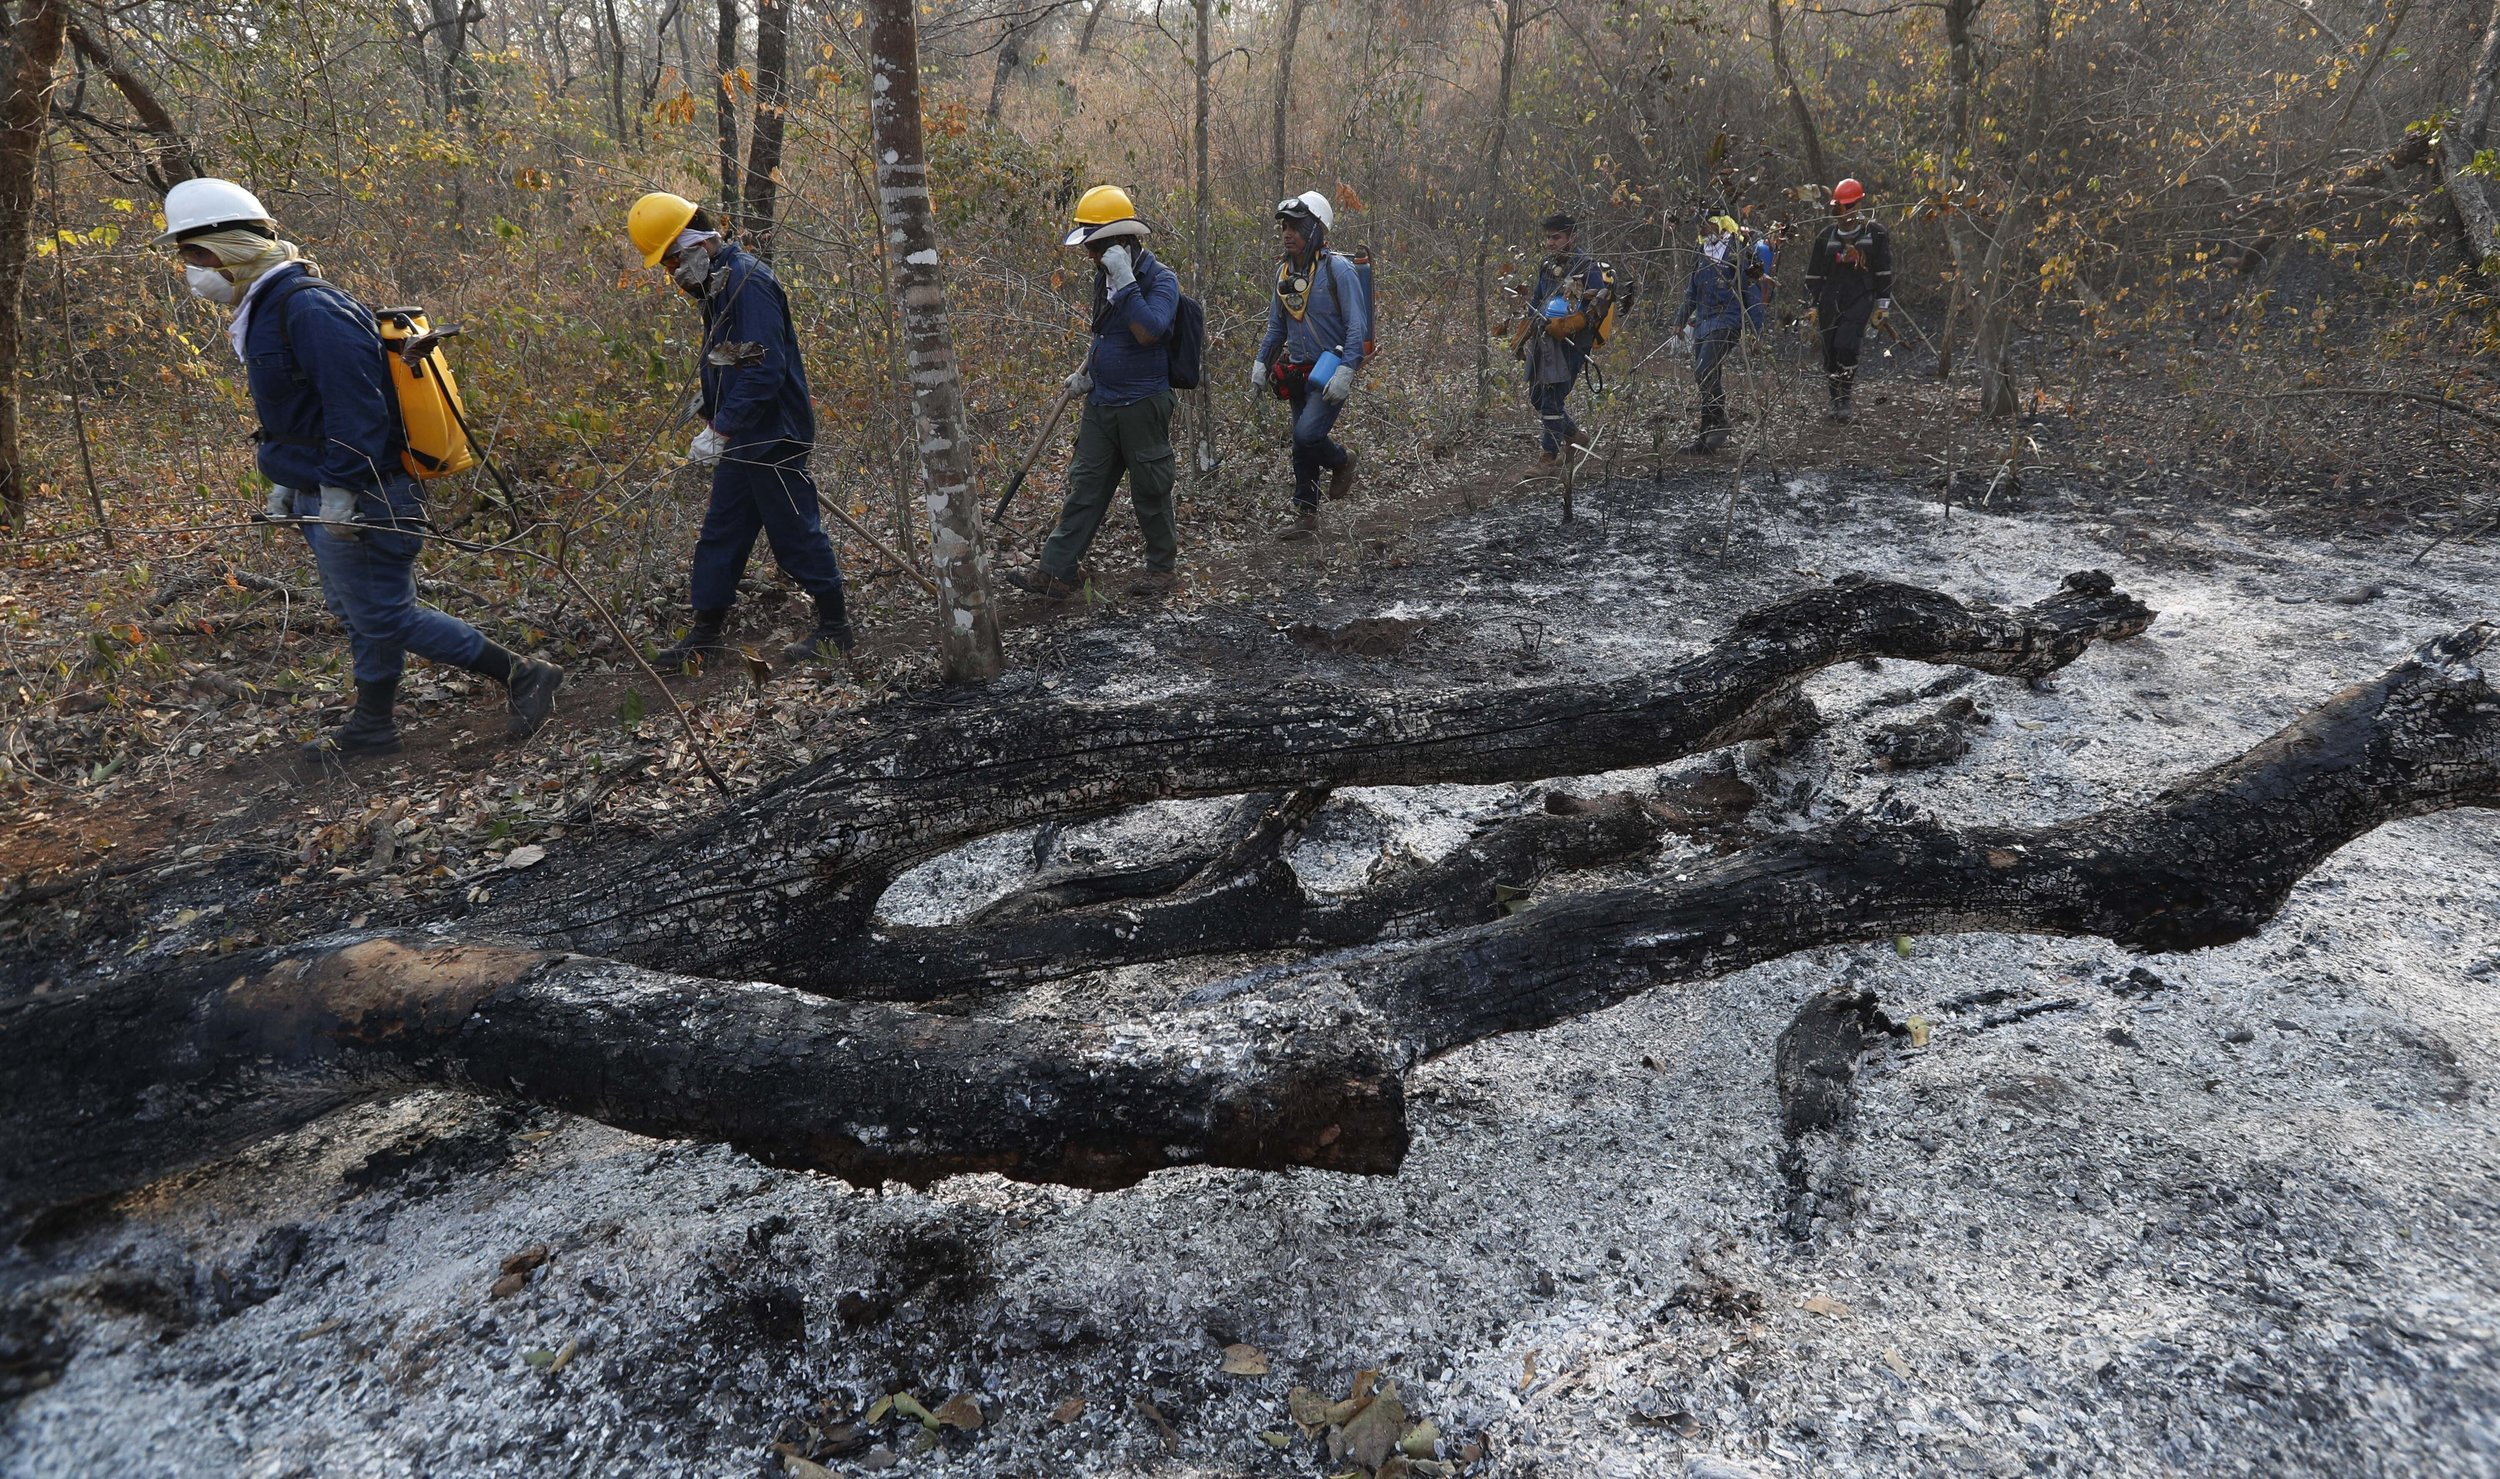 Volunteers walk past an area scorched by fires in the Chiquitania forest on the outskirts of Robore, Bolivia, Thursday, Aug. 29, 2019. While some of the fires are burning in Bolivia's share of the Amazon, the largest blazes were in the Chiquitania region of southeastern Bolivia. It's zone of dry forest, farmland and open prairies has seen an expansion of farming and ranching in recent years. (Juan Karita/AP)